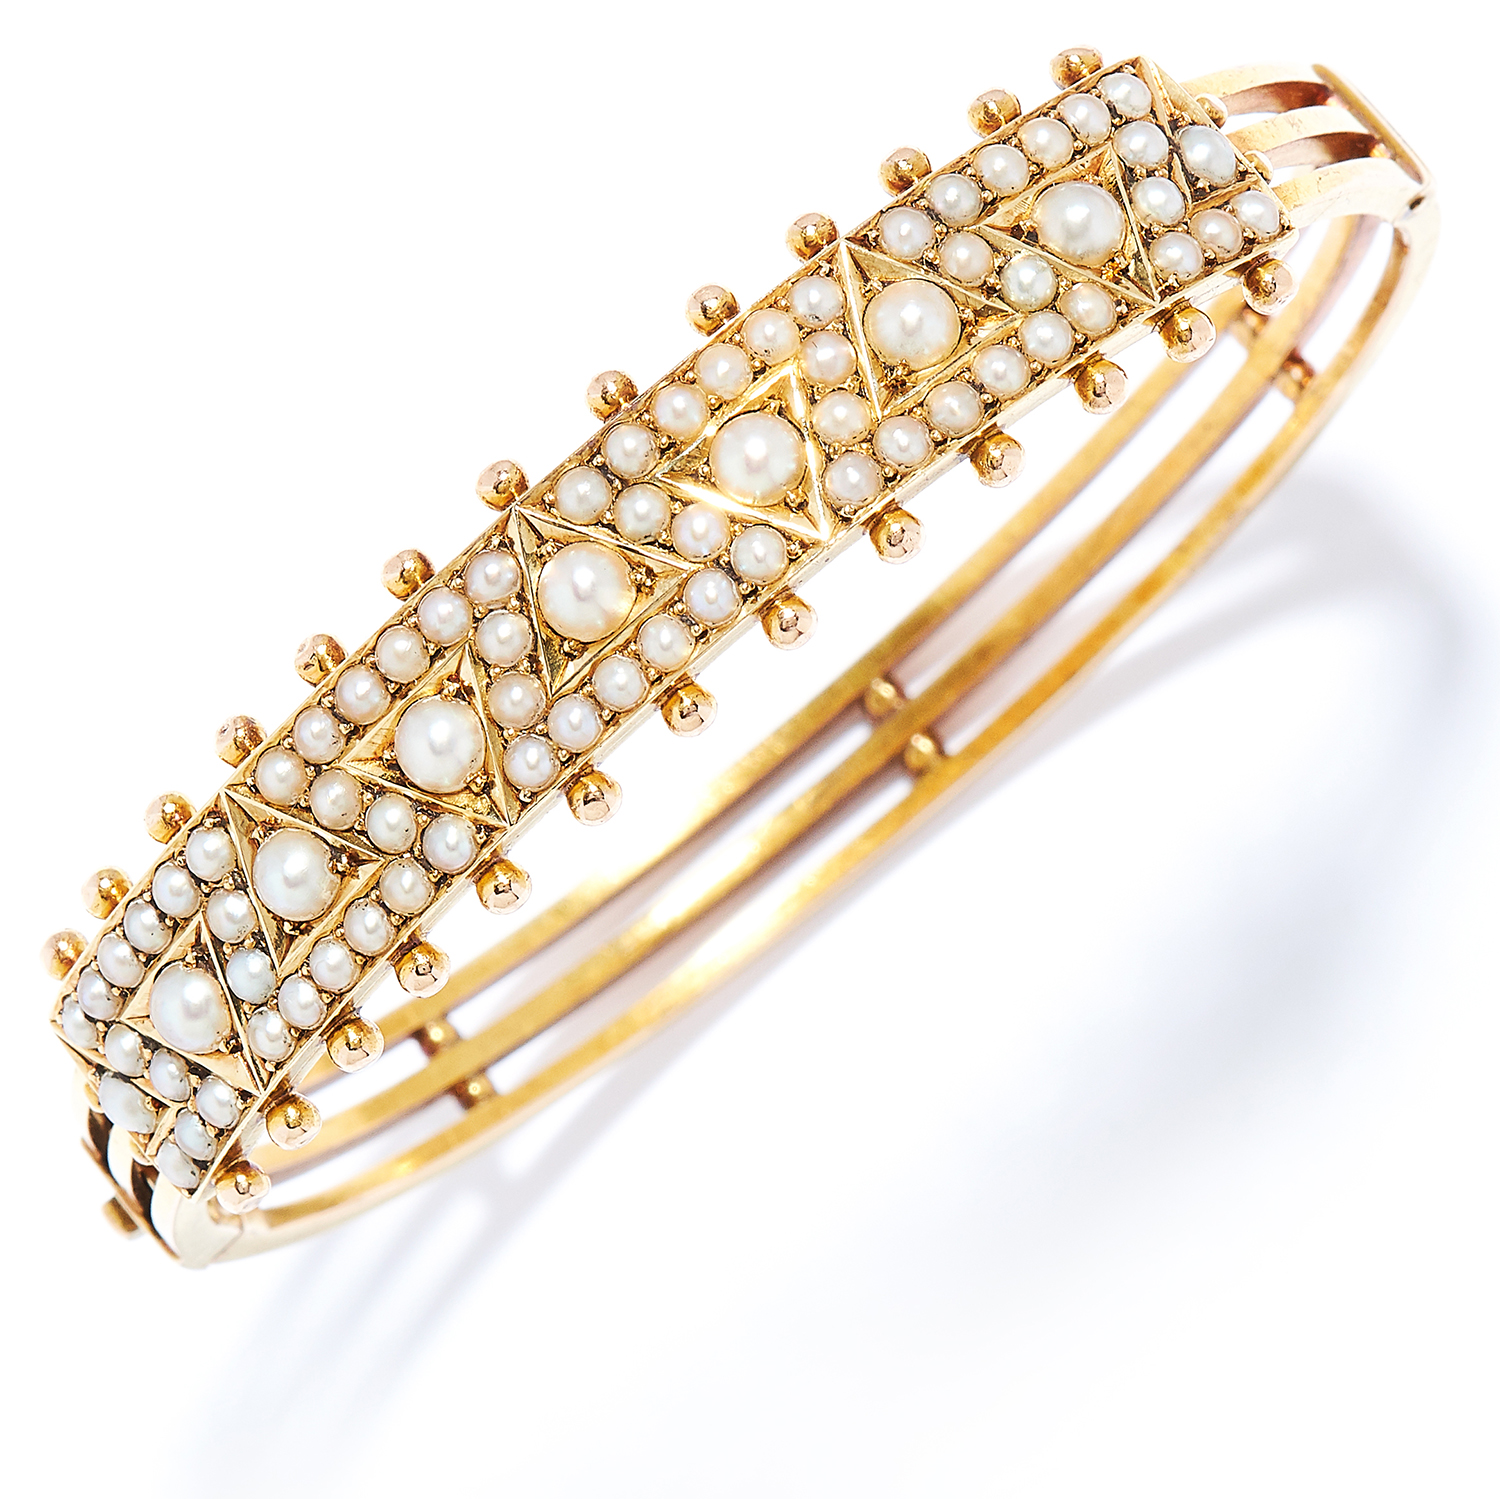 ANTIQUE SEED PEARL BANGLE in high carat yellow gold, set with rows of seed pearls, unmarked, 5.5cm